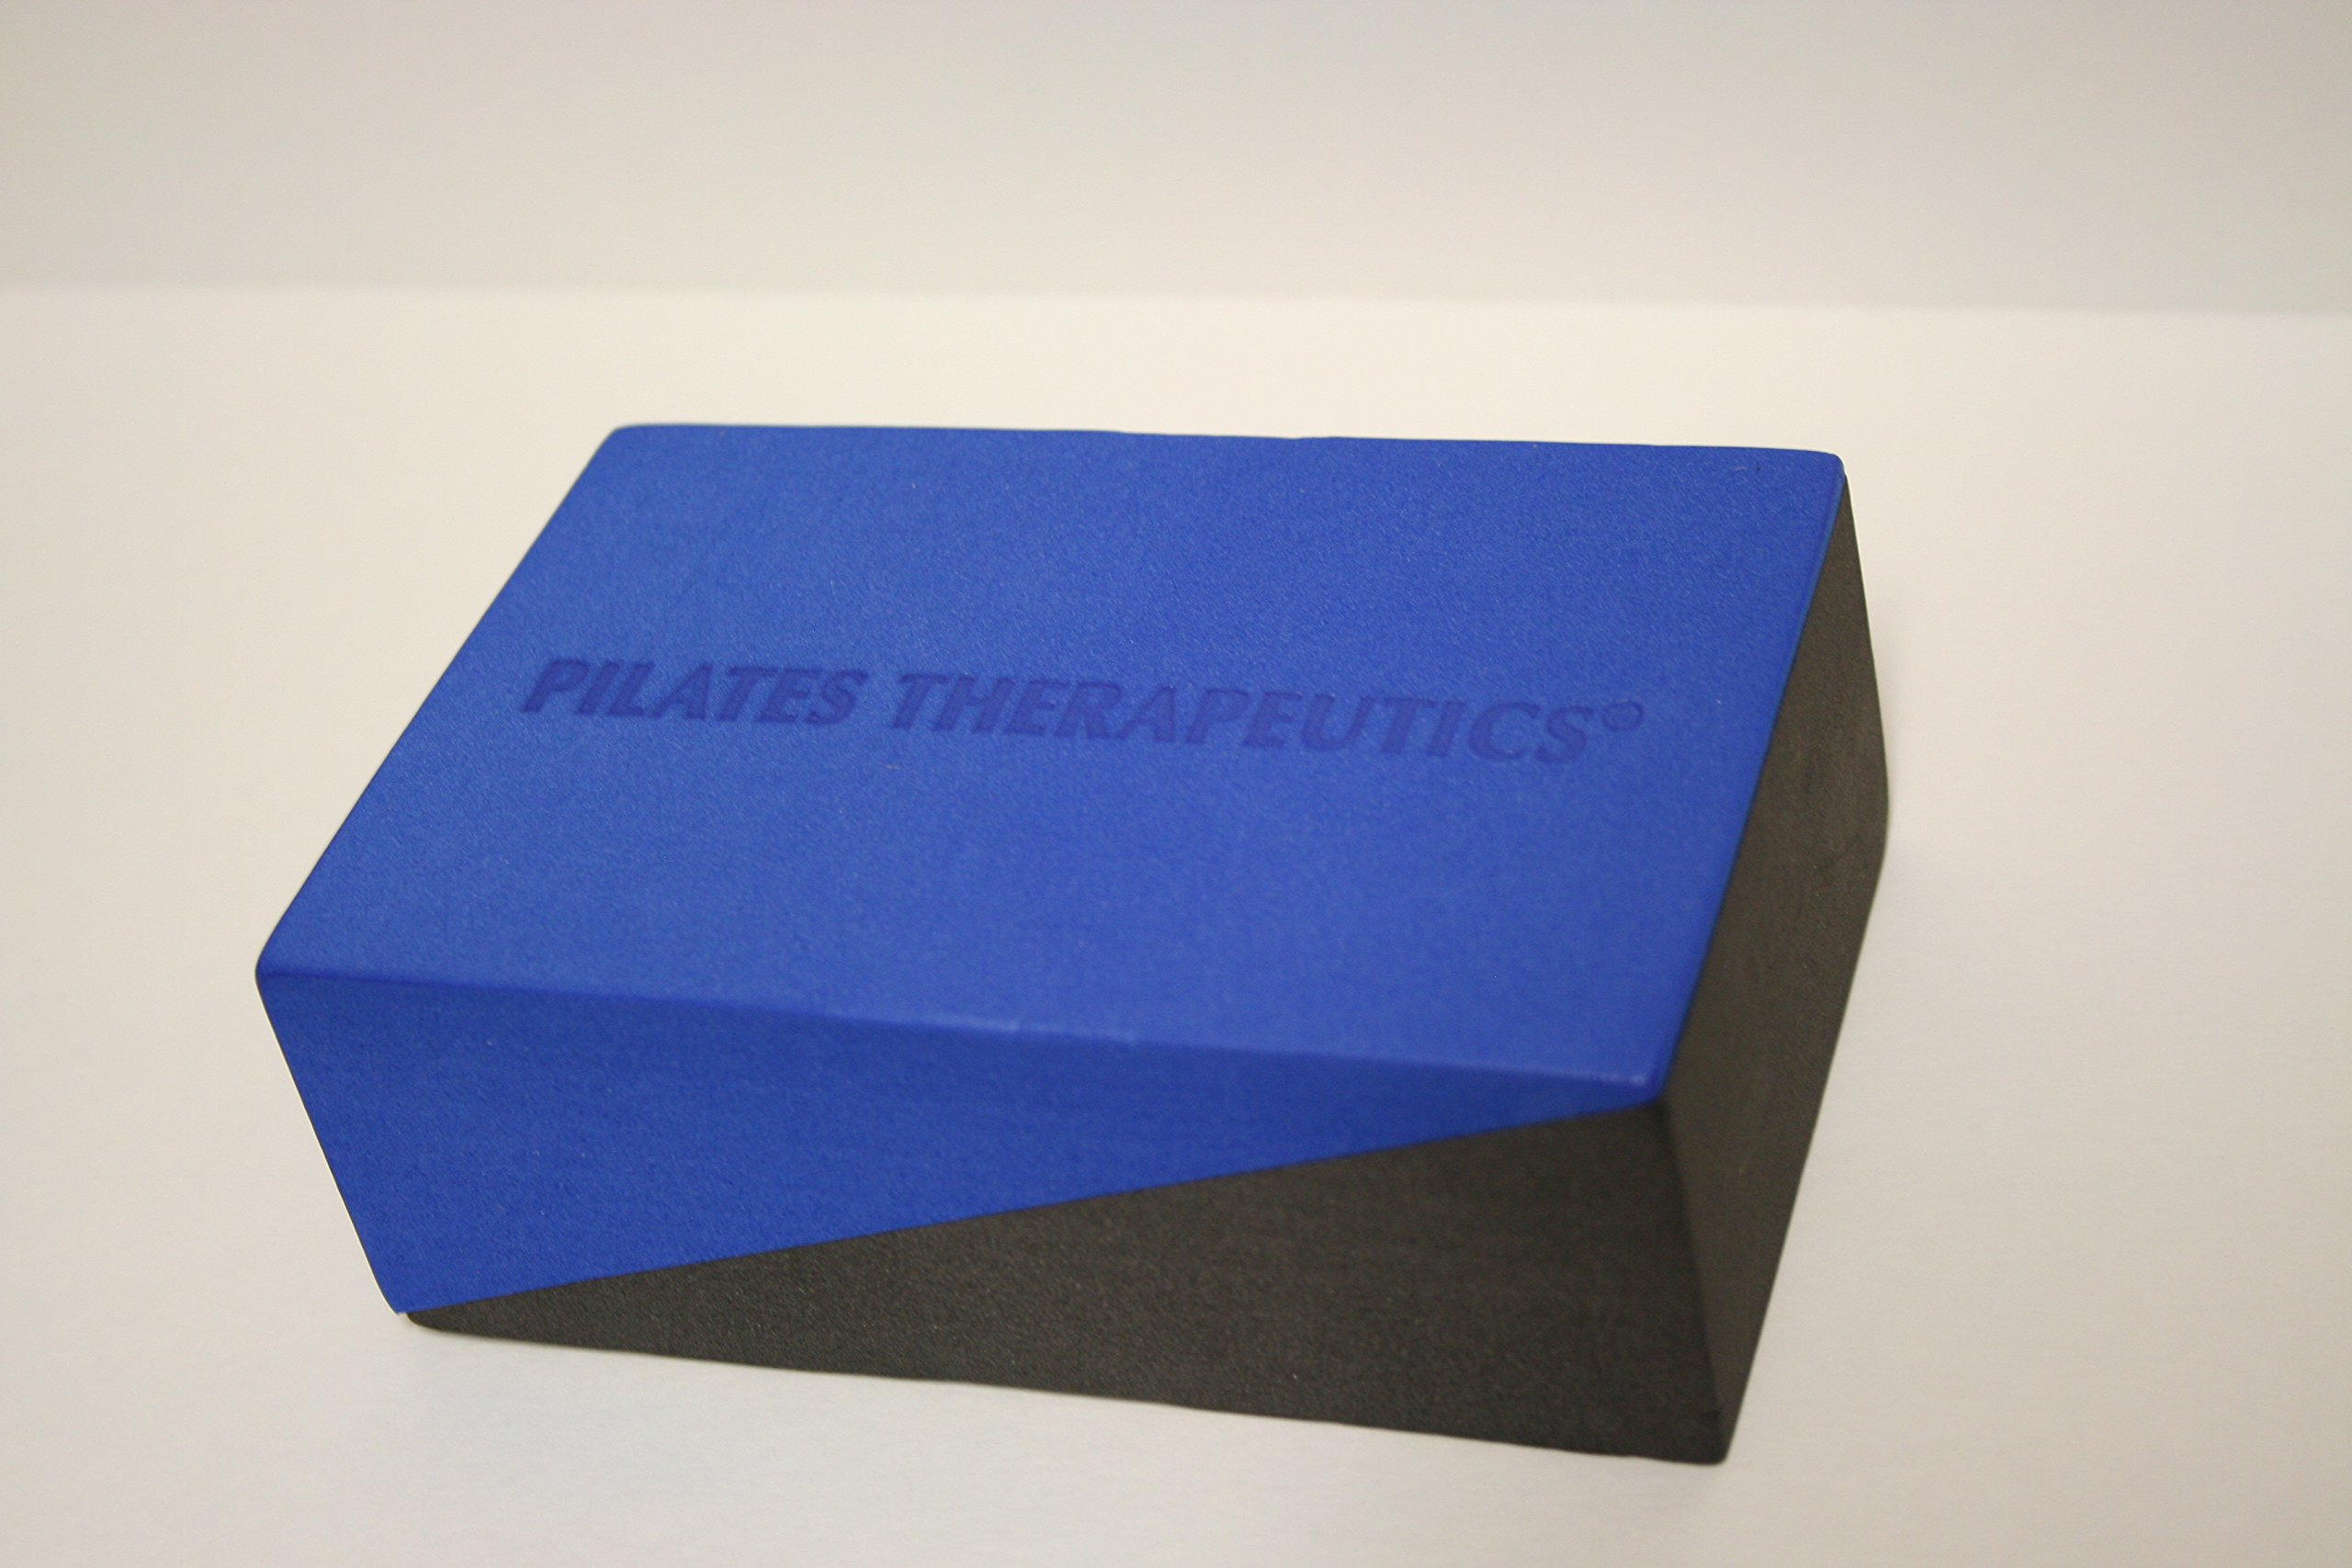 Pilates Therapeutics Activ-Wedge